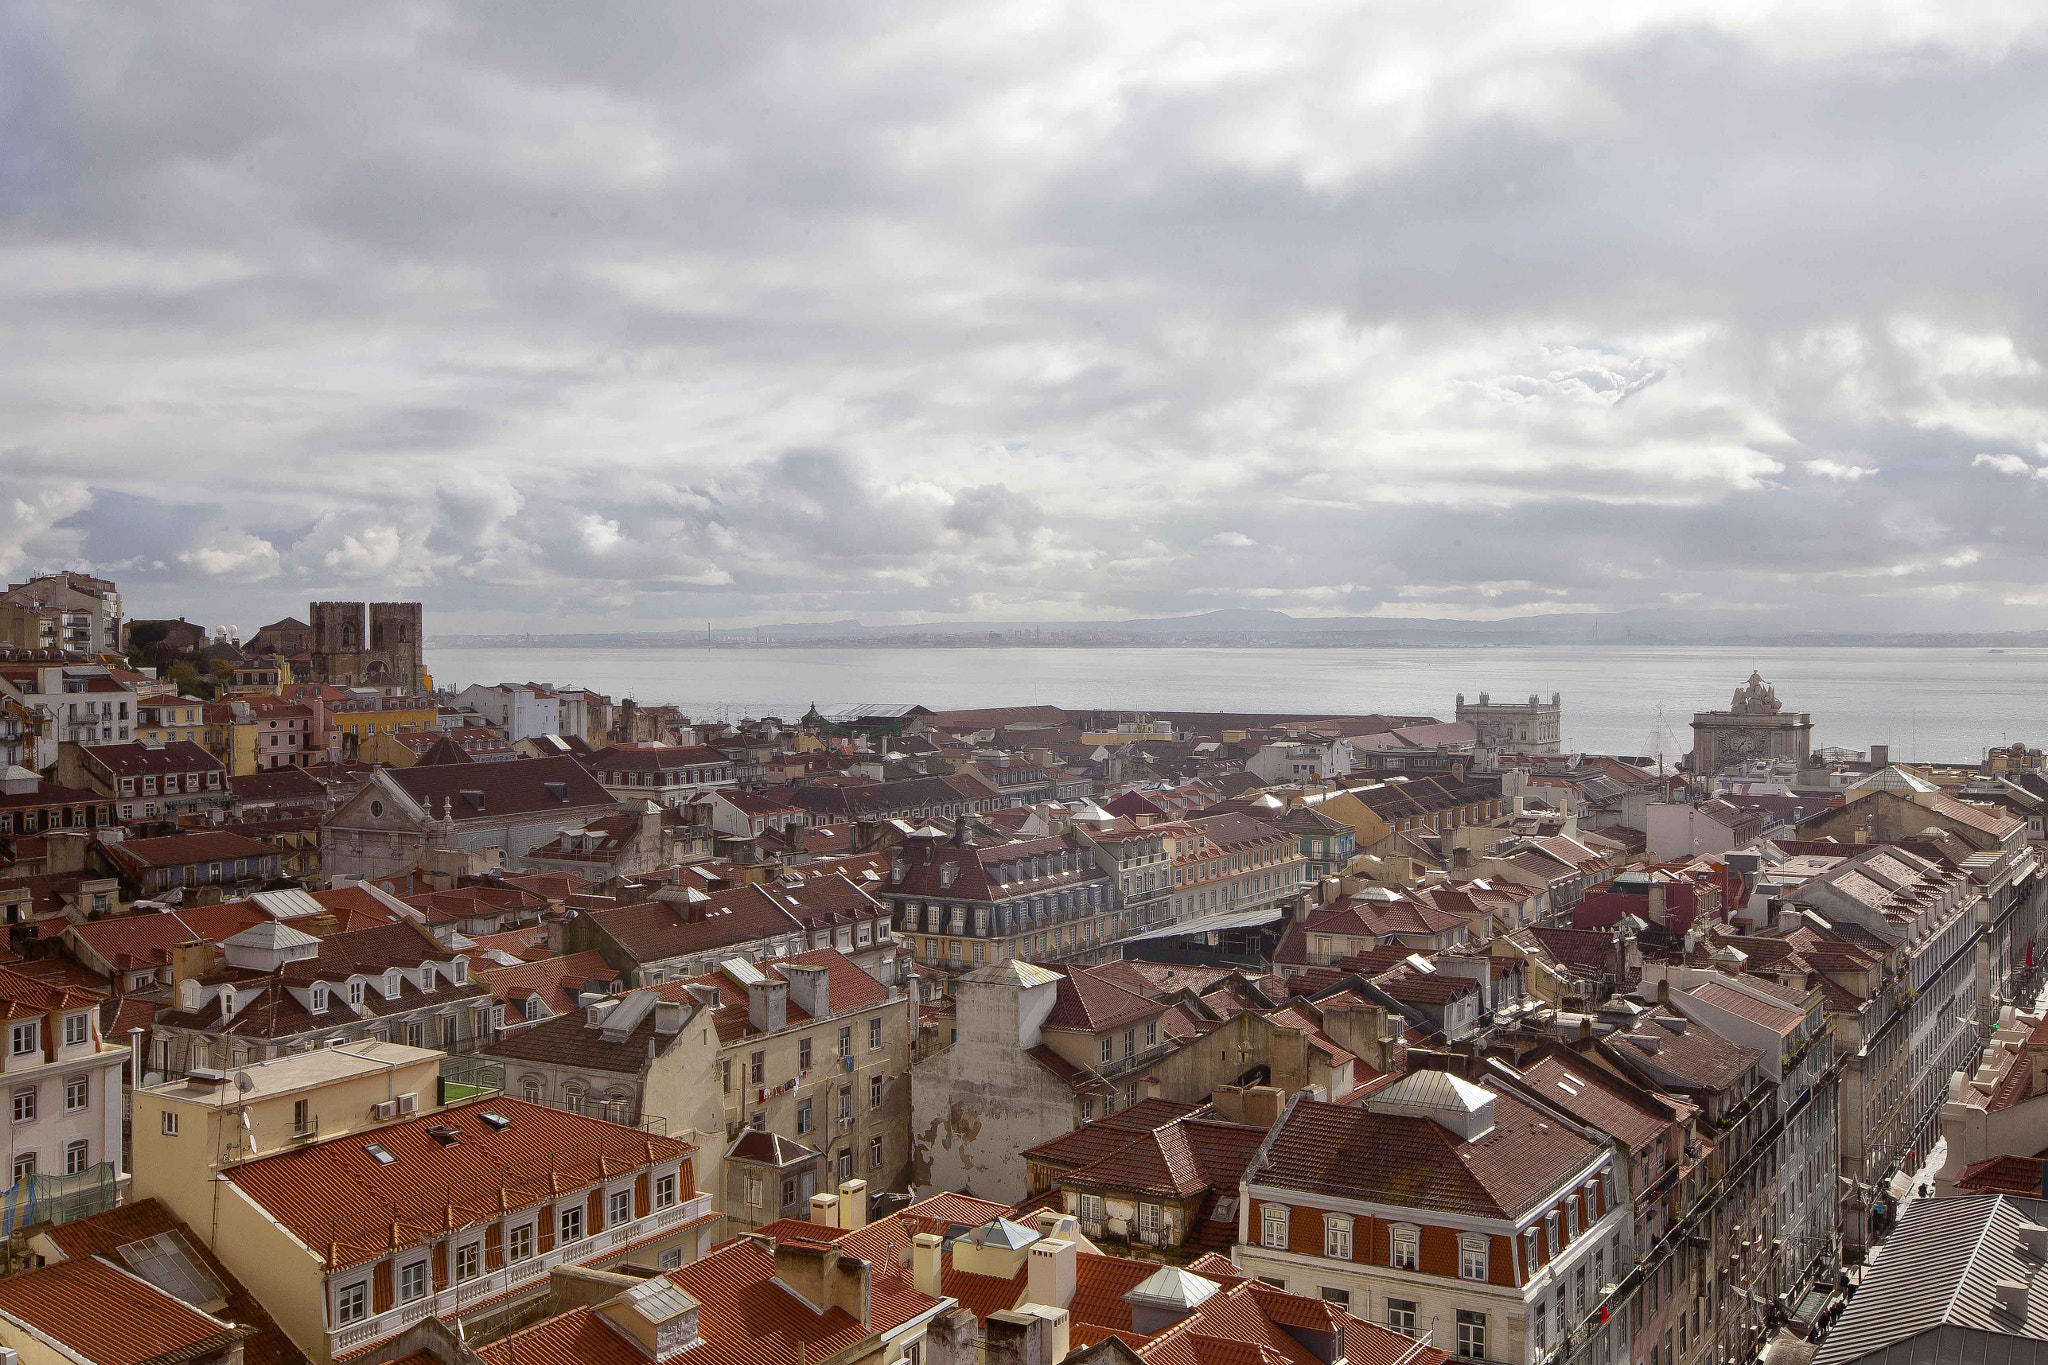 Photograph On the roofs of Lisboa by Jaume Martí on 500px